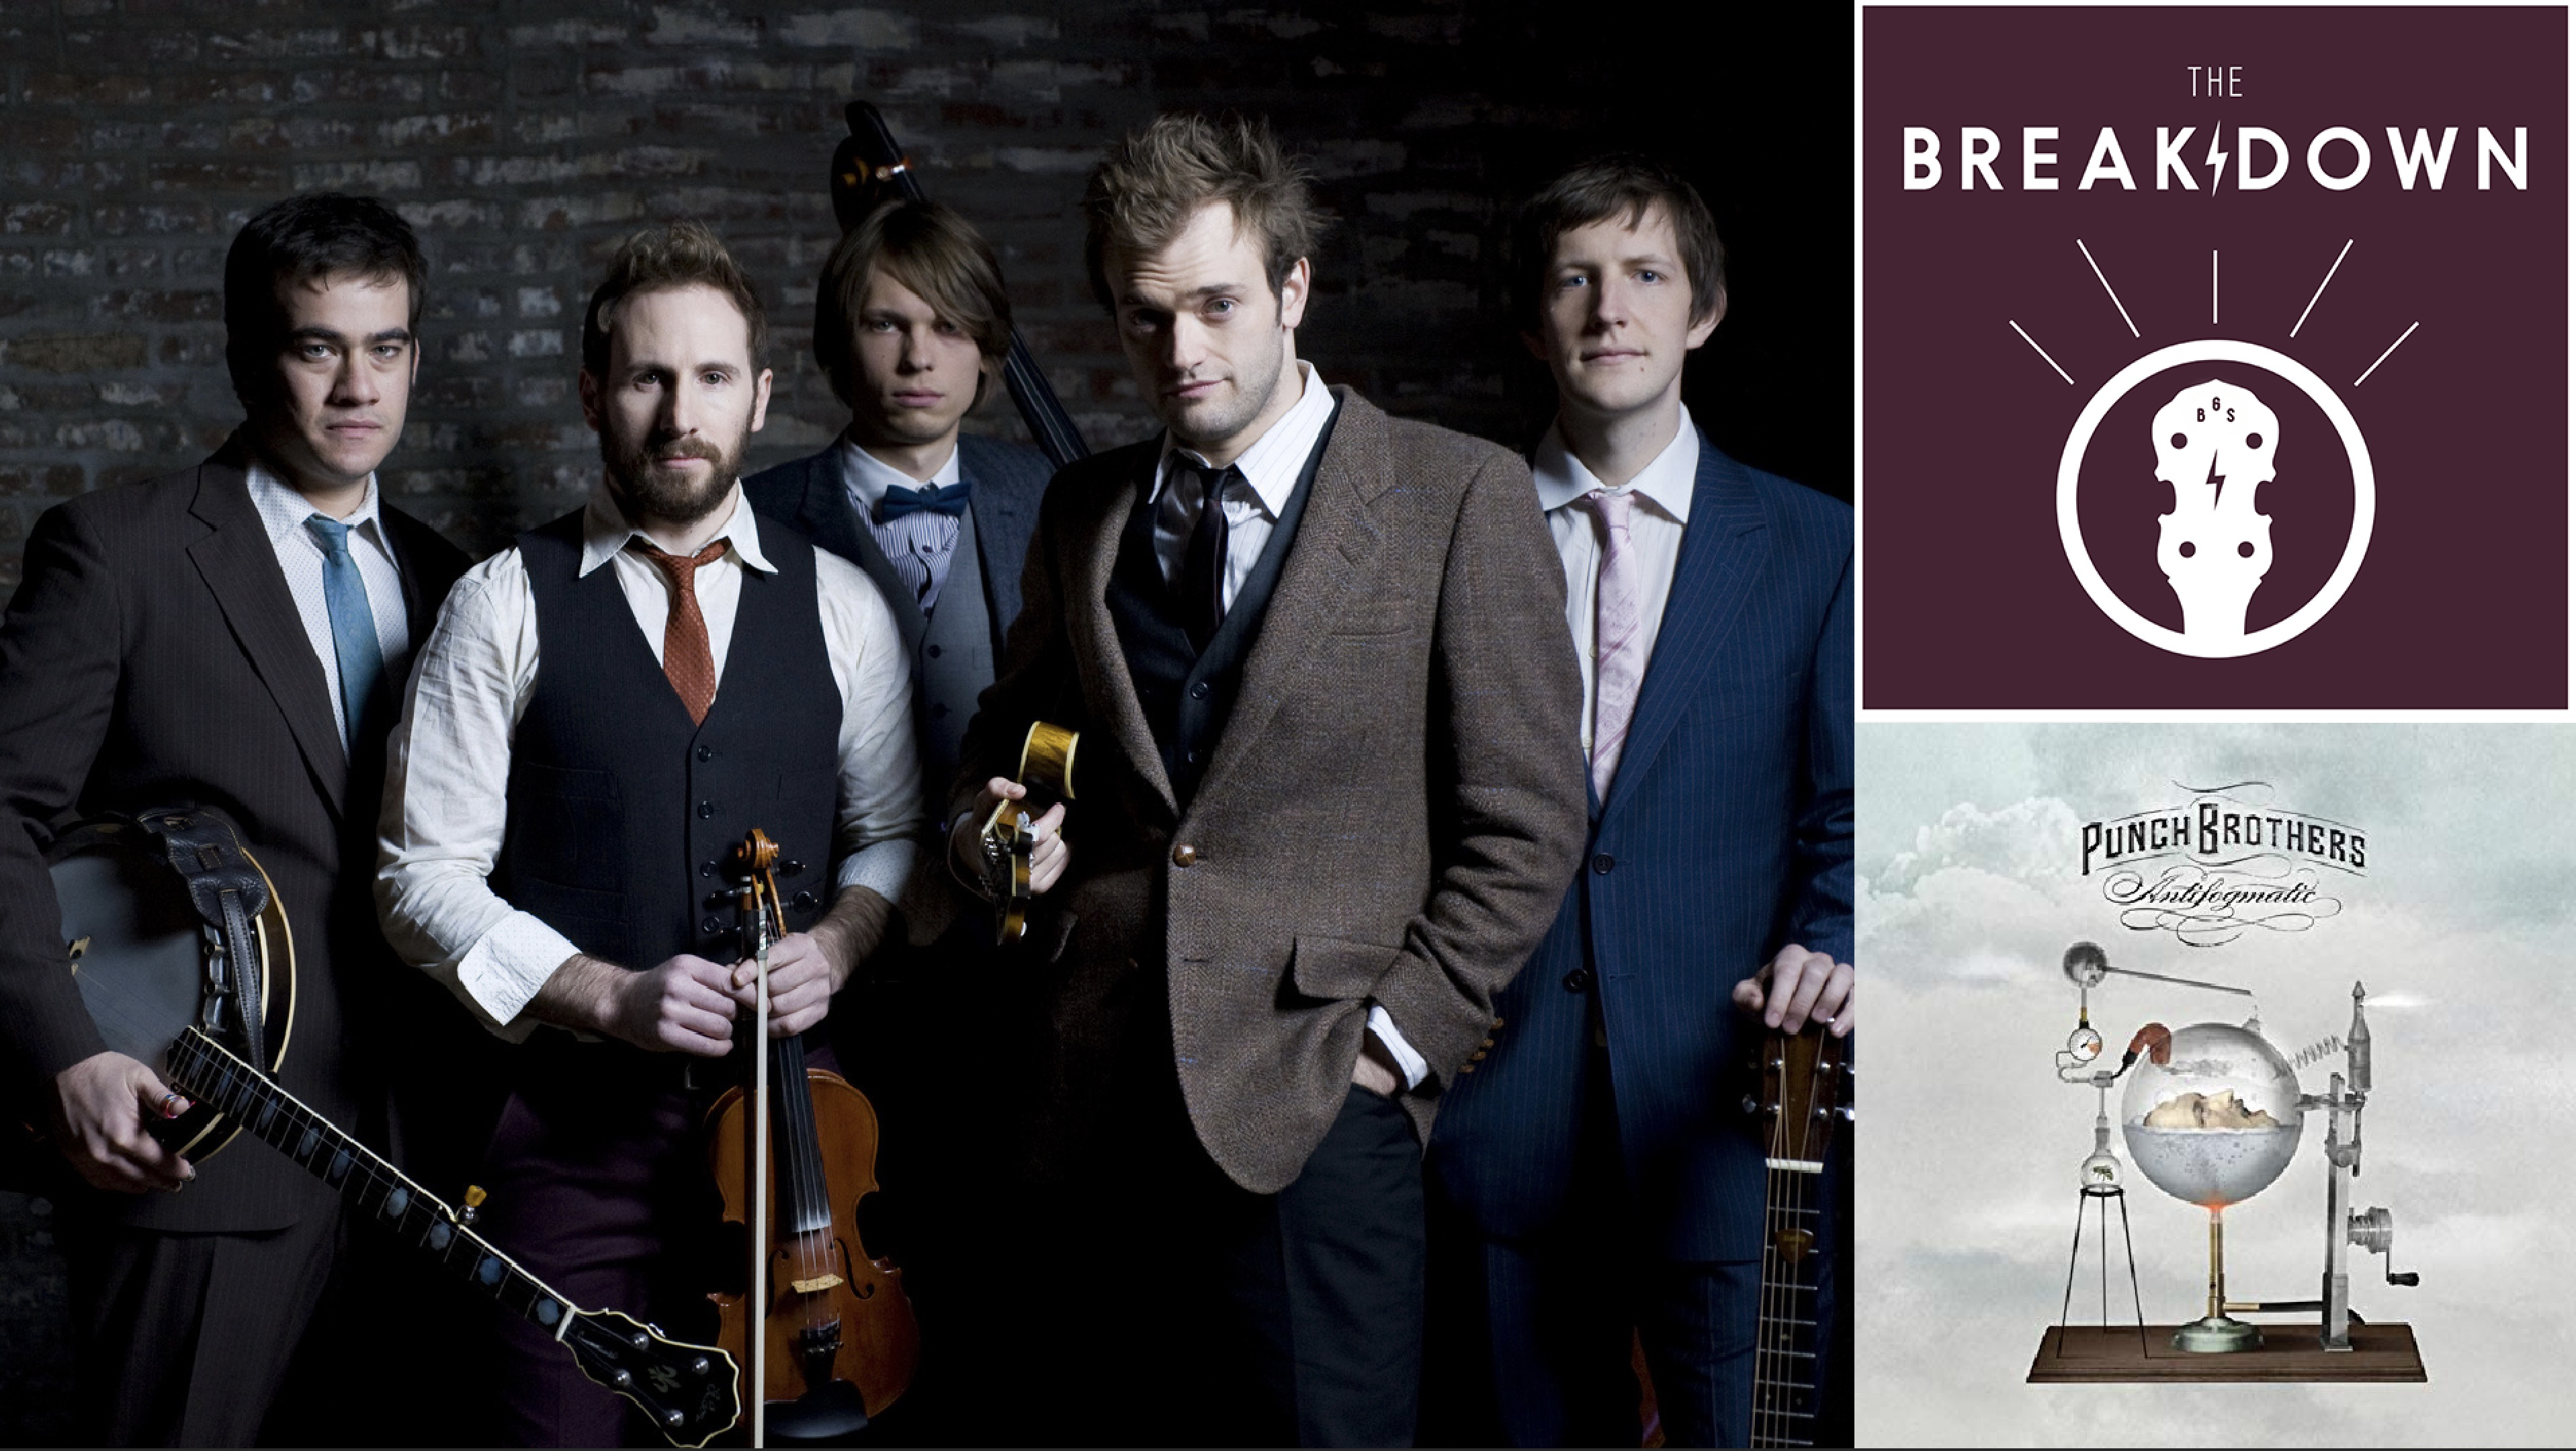 The Breakdown - Punch Brothers, 'Antifogmatic'